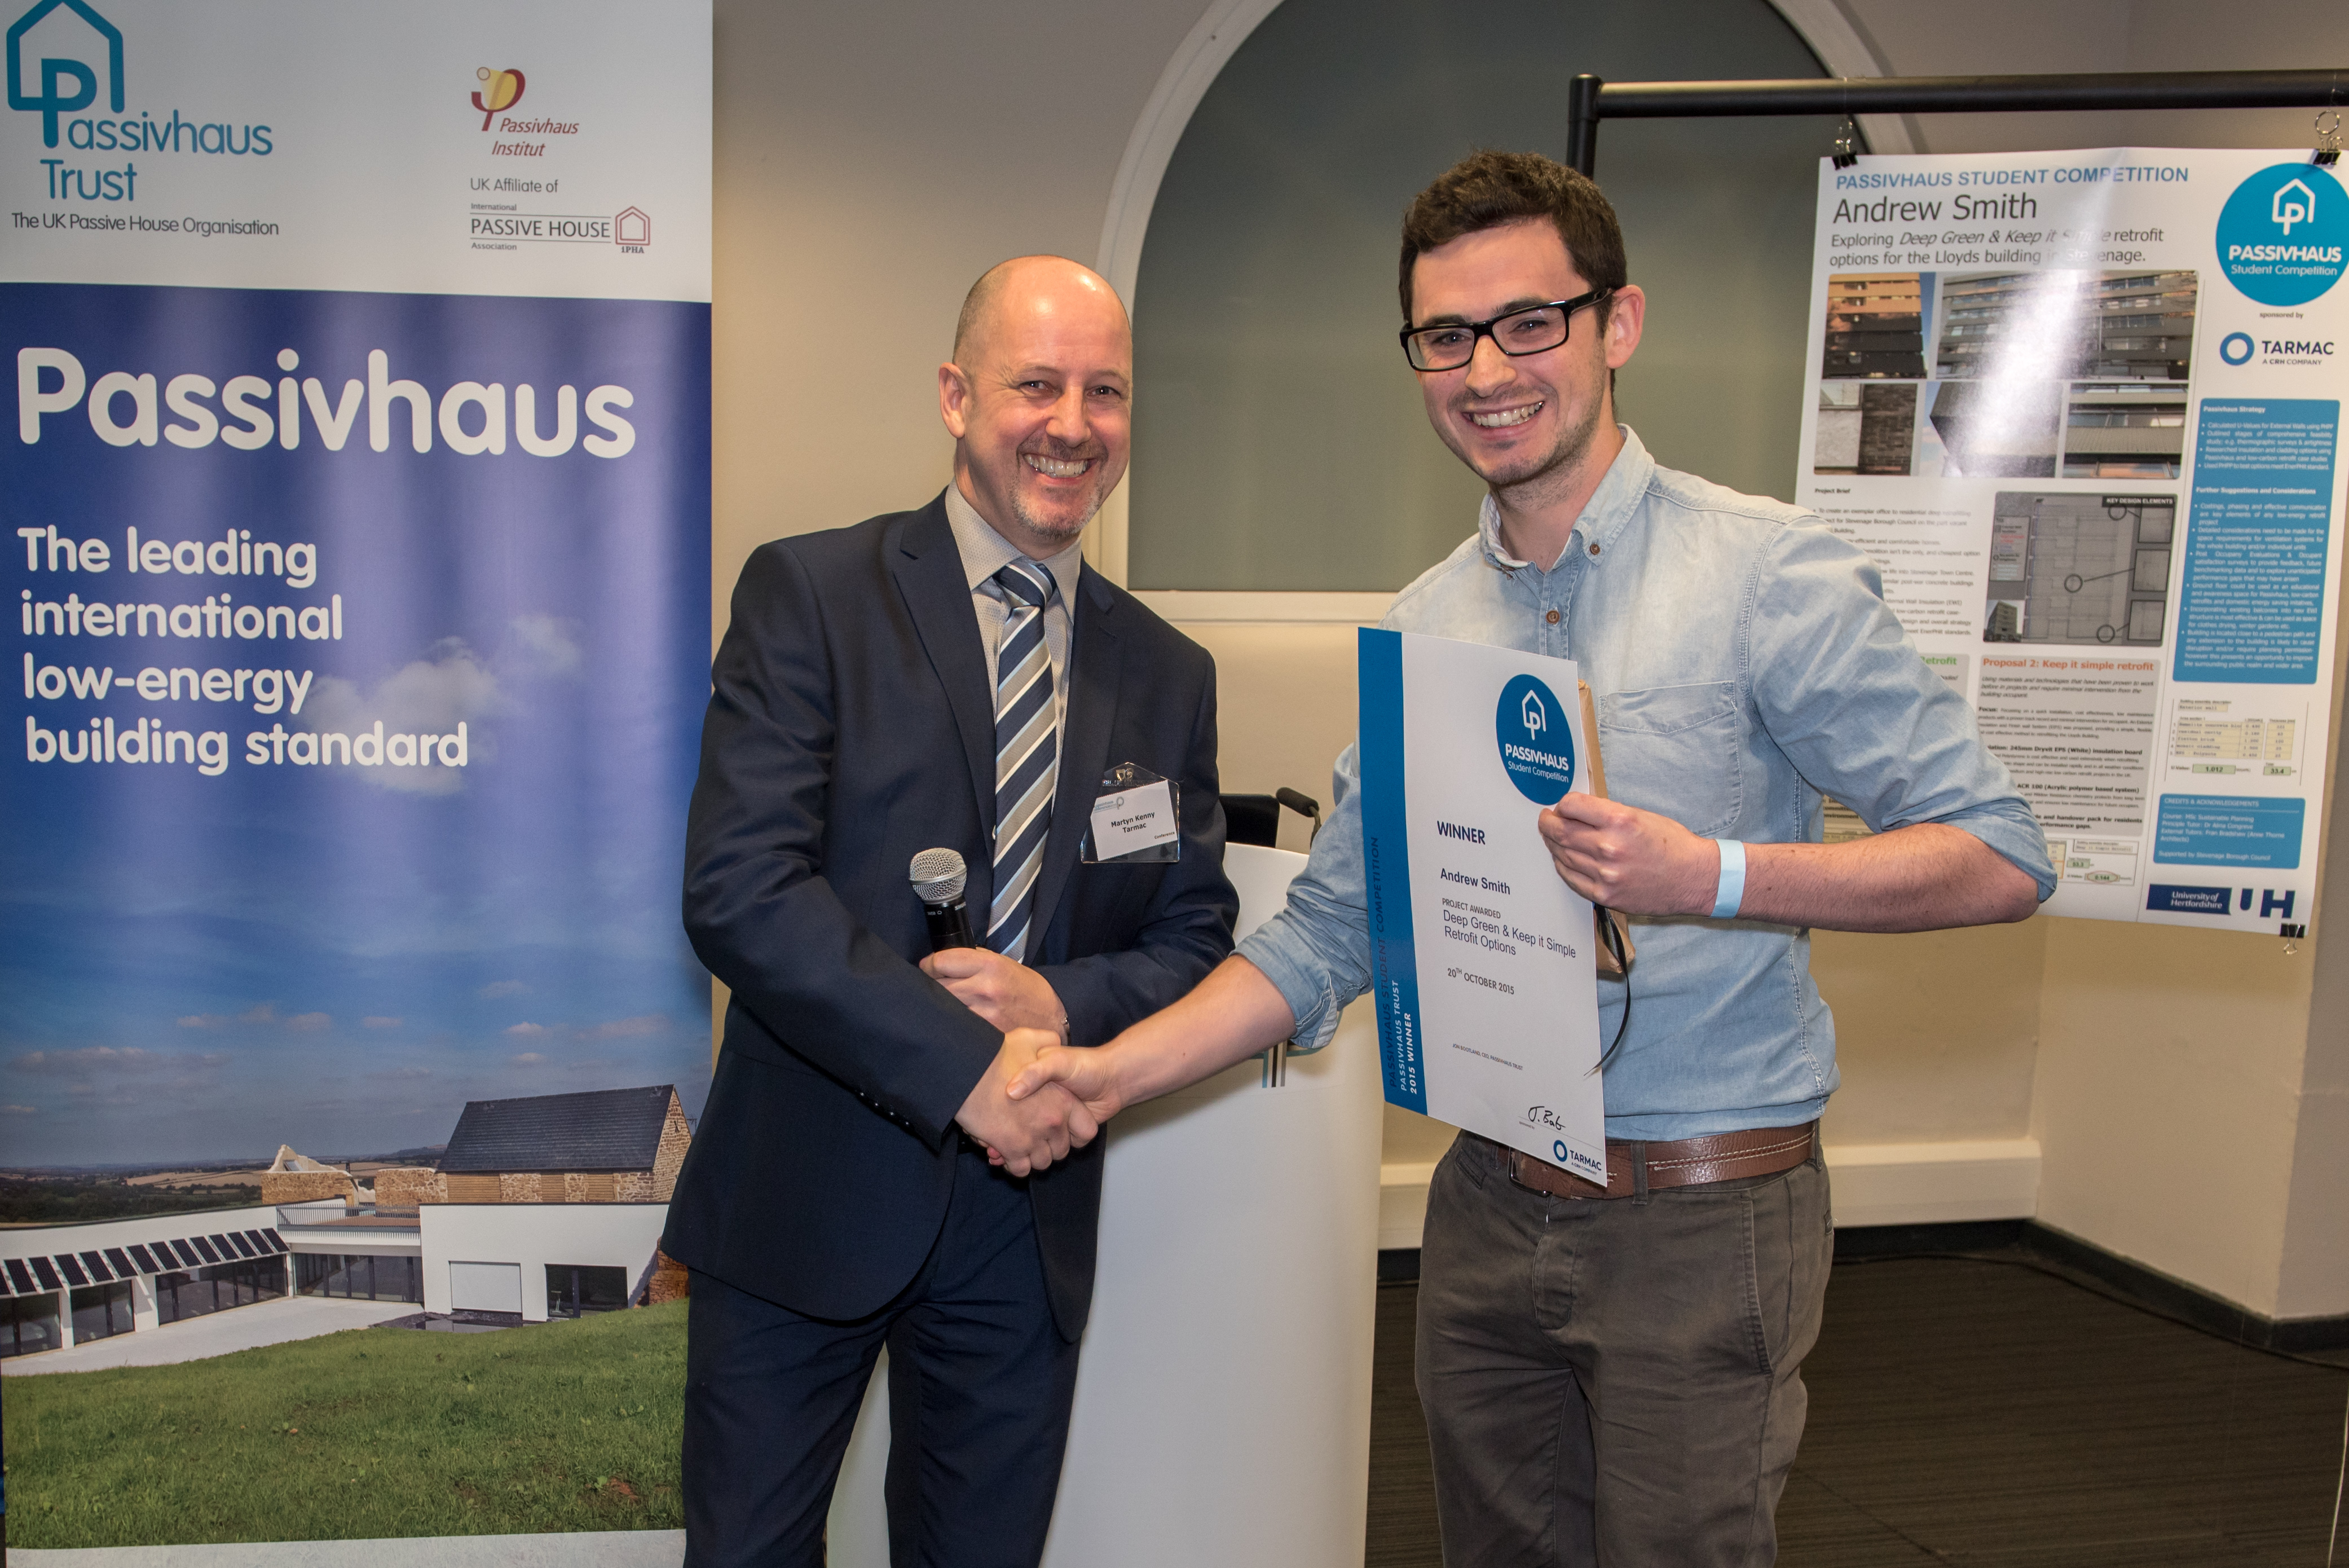 Andrew Smith: Passivhaus Student Competition 2015